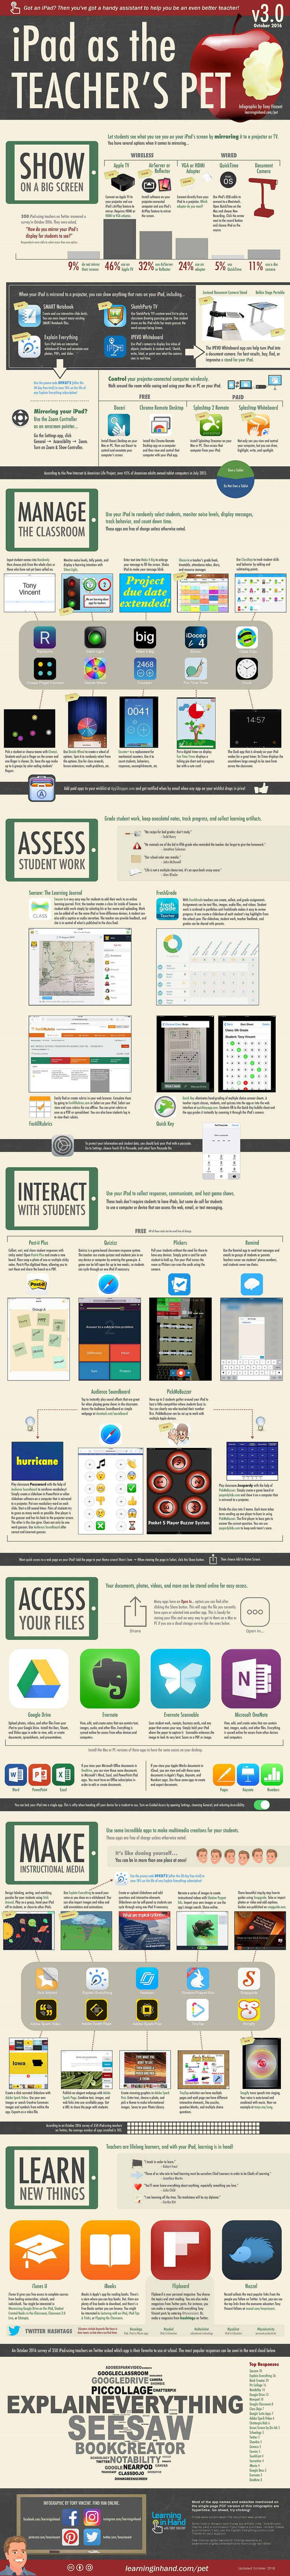 This infographic has been updated for 2016! It's still all about what can be done by iPad using educators, whether or not their students have iPads.